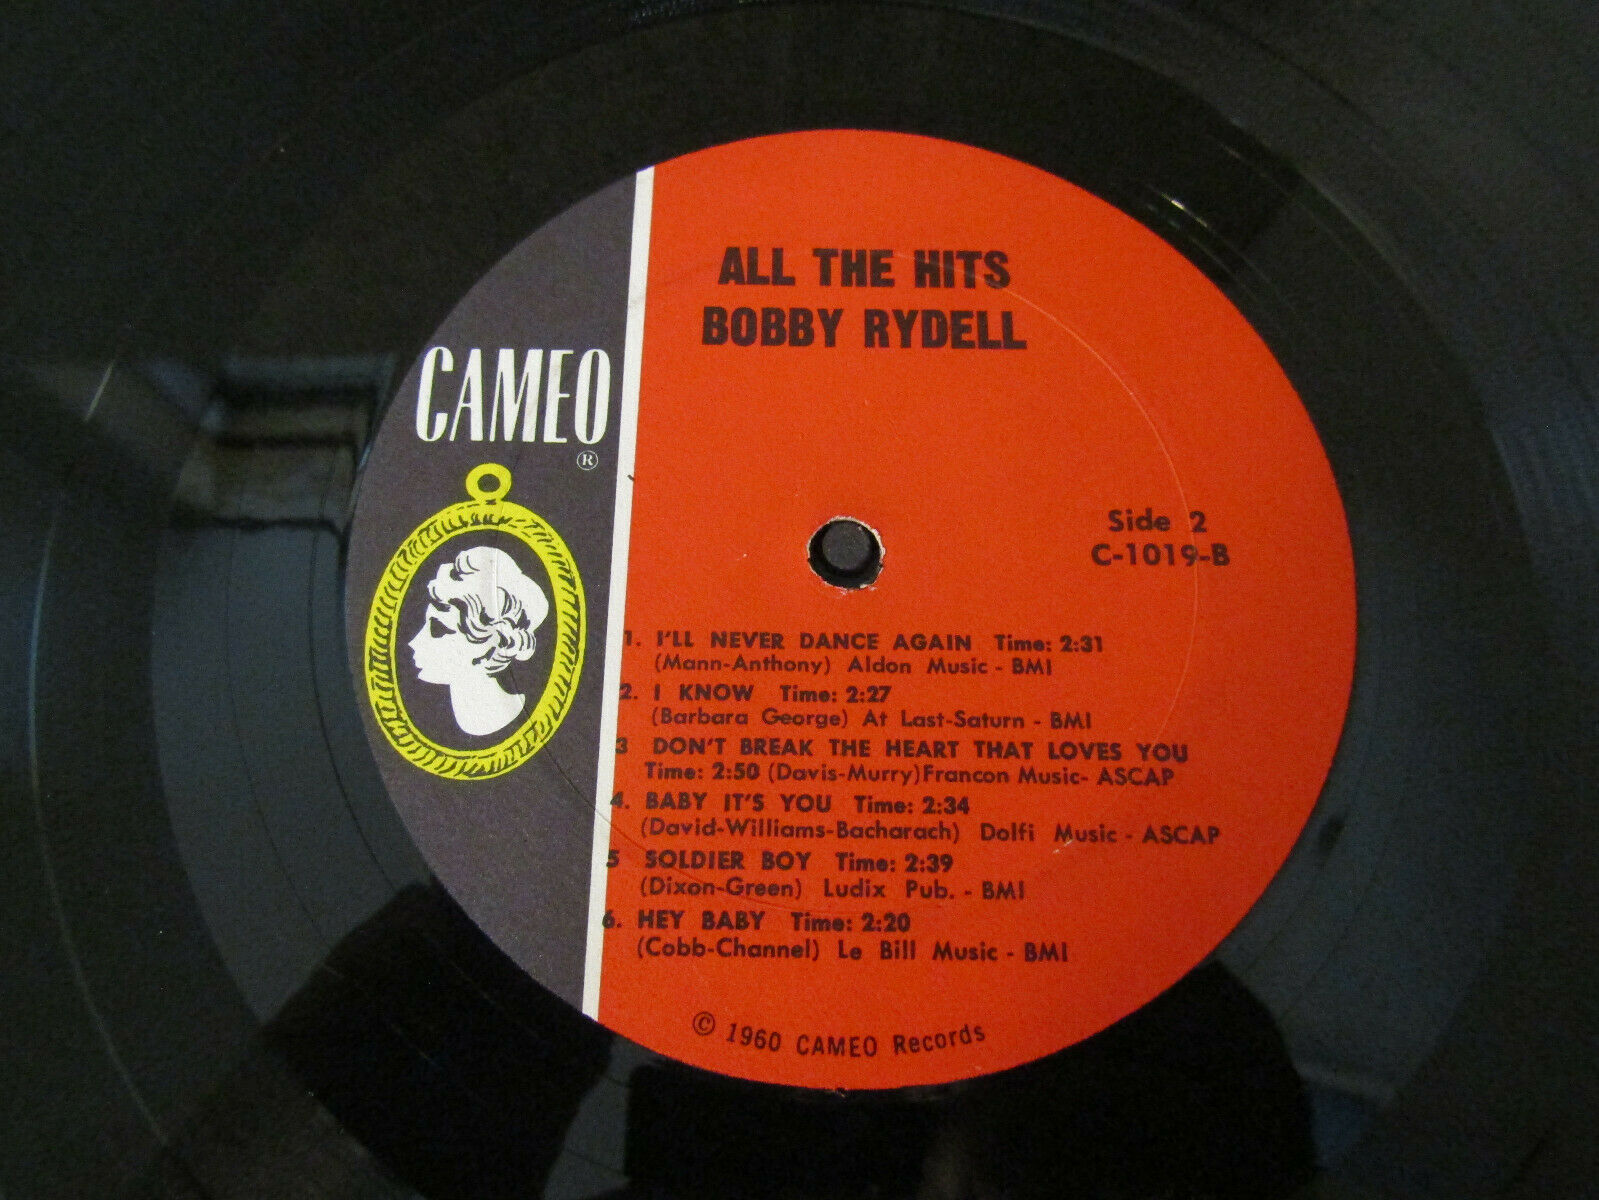 Bobby Rydell All The Hits Cameo C1019 Mono Vinyl Record LP Album image 6